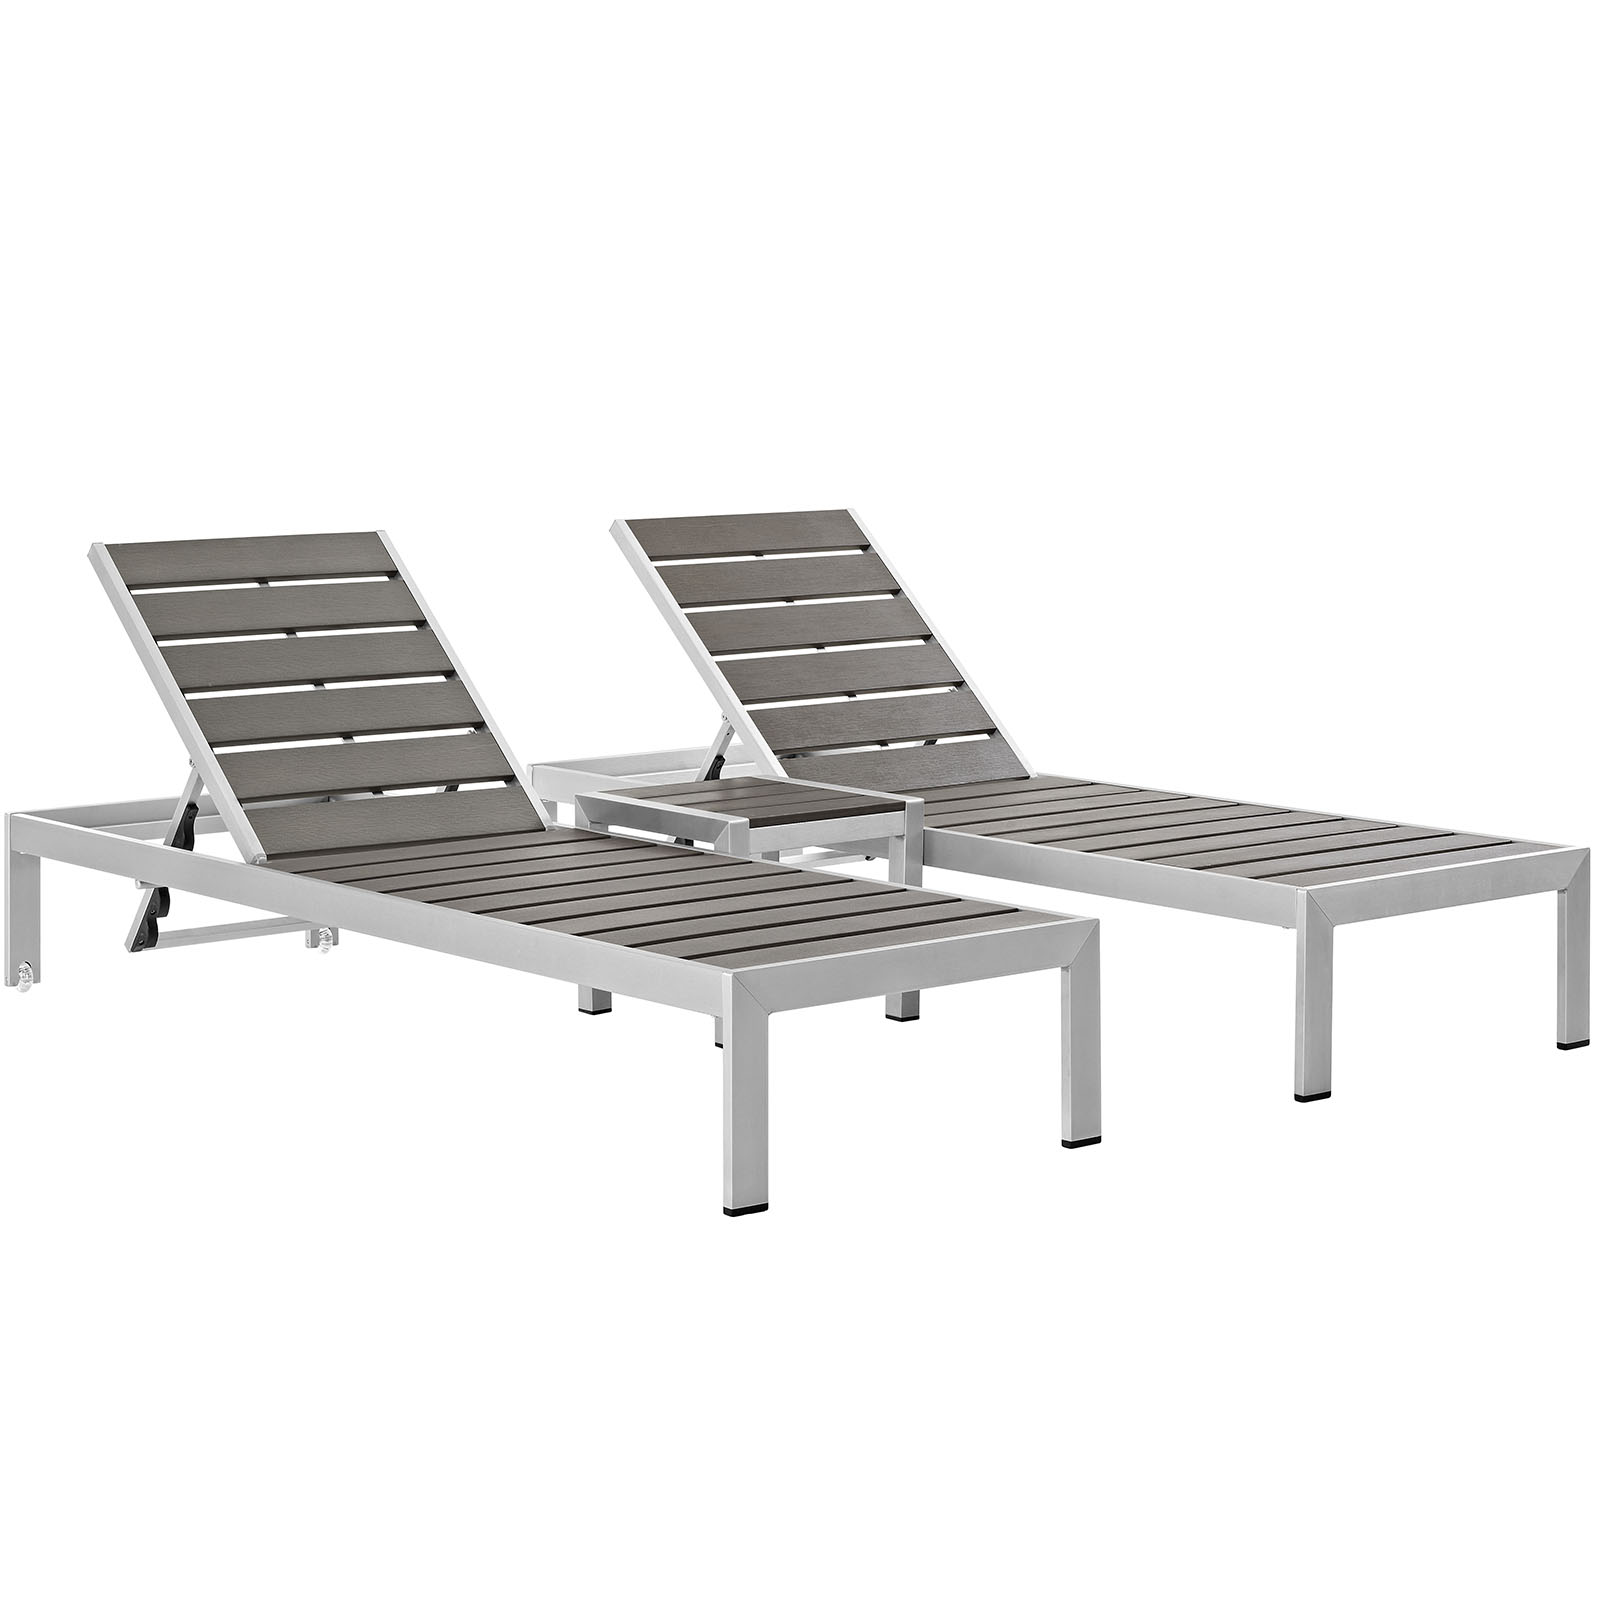 White Plastic Sun Loungers Modern Contemporary Urban Design Outdoor Patio Balcony Three Pcs Chaise Lounge Chair Set Grey Gray Aluminum